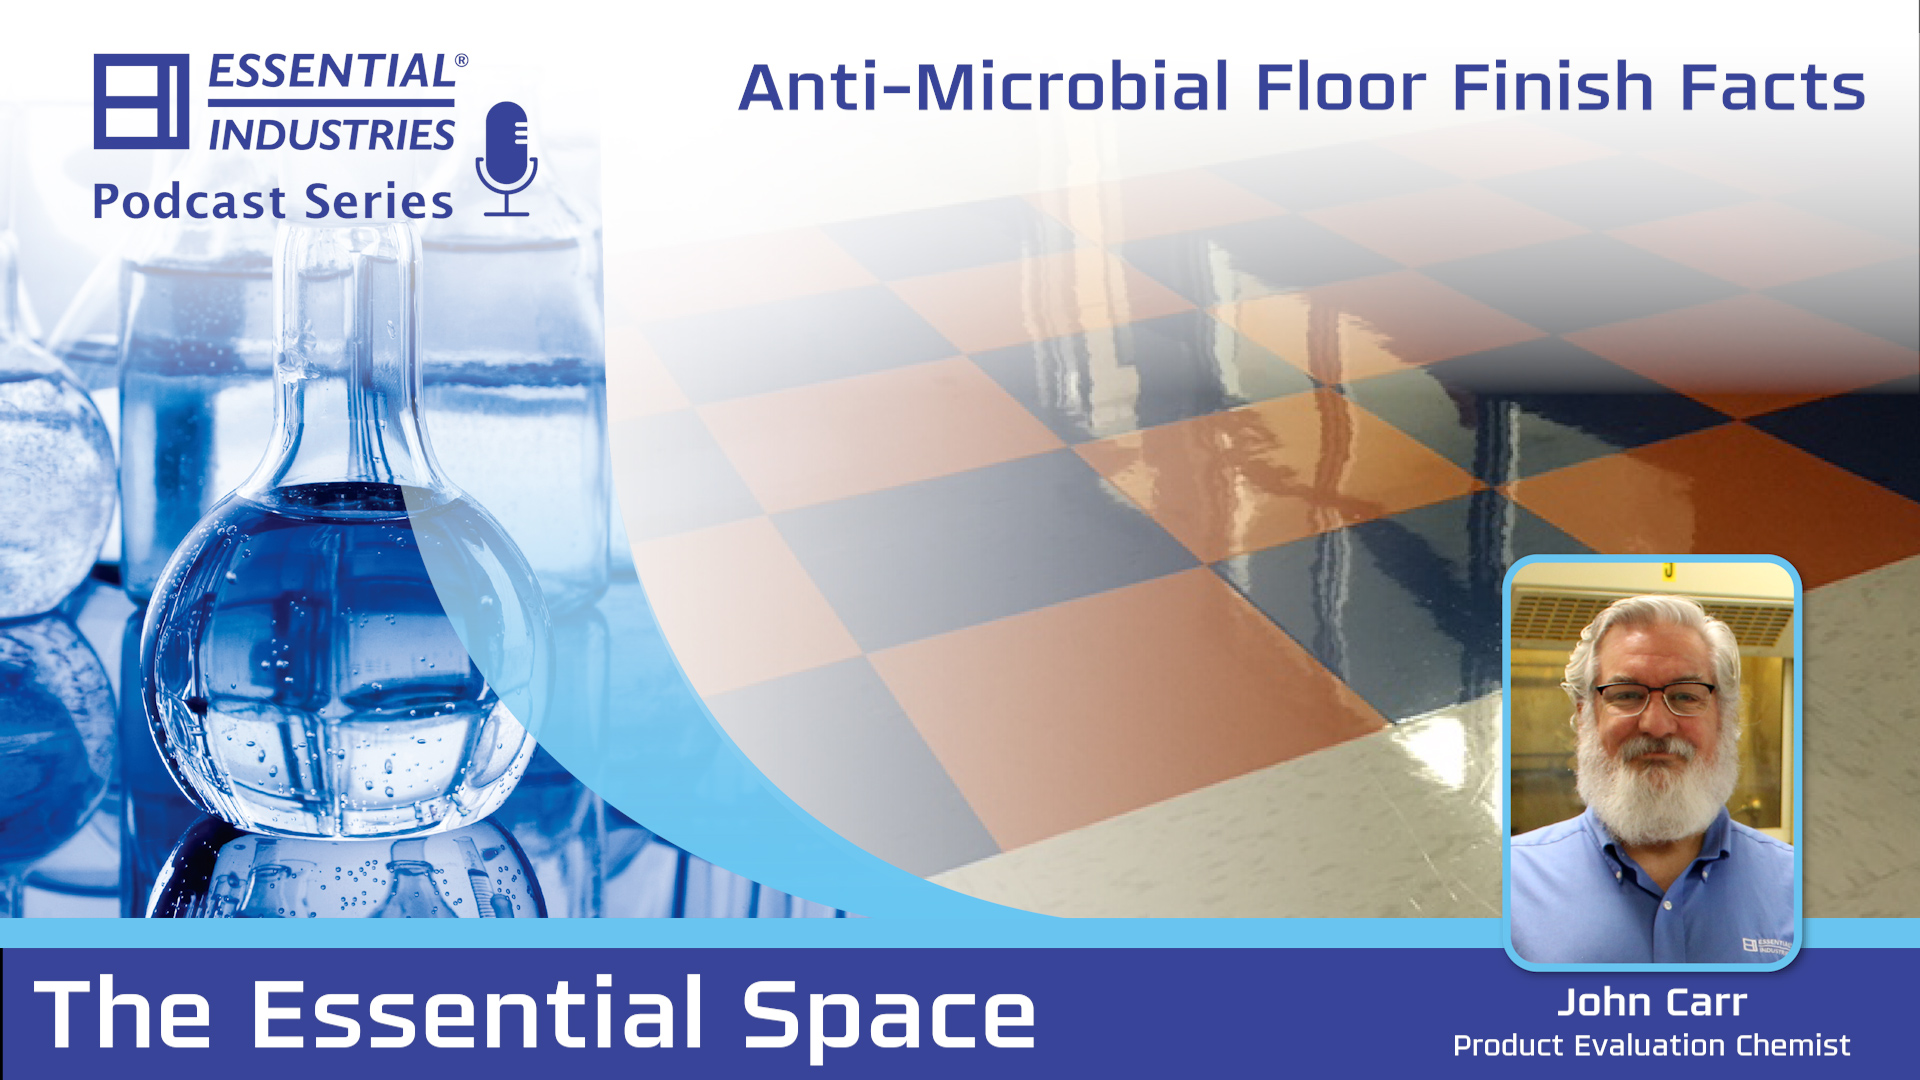 Podcast 29 Anti-Microbial Floor Finish Facts